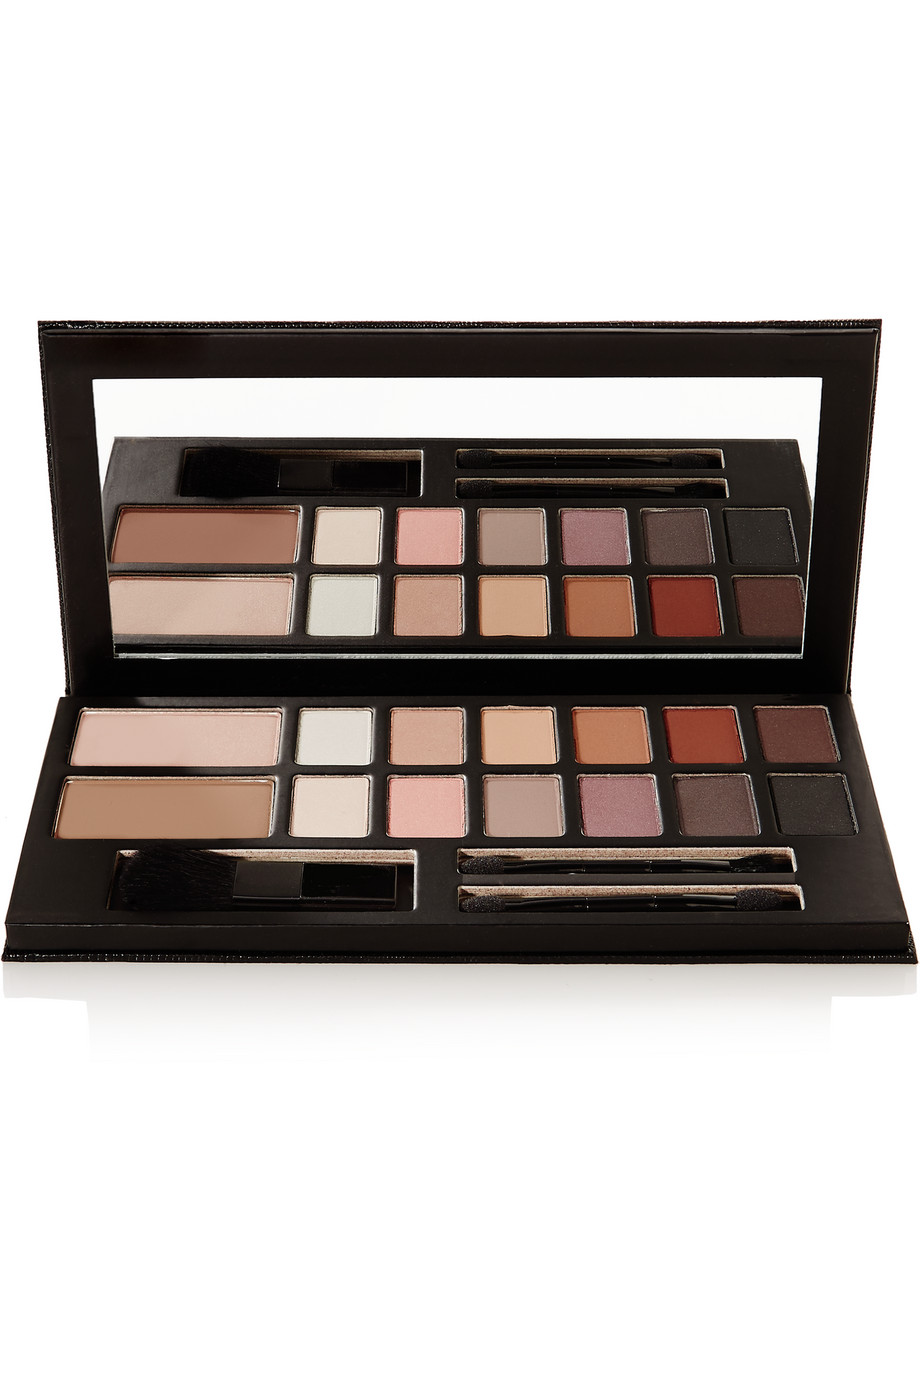 The Legacy Palette, by Kevyn Aucoin